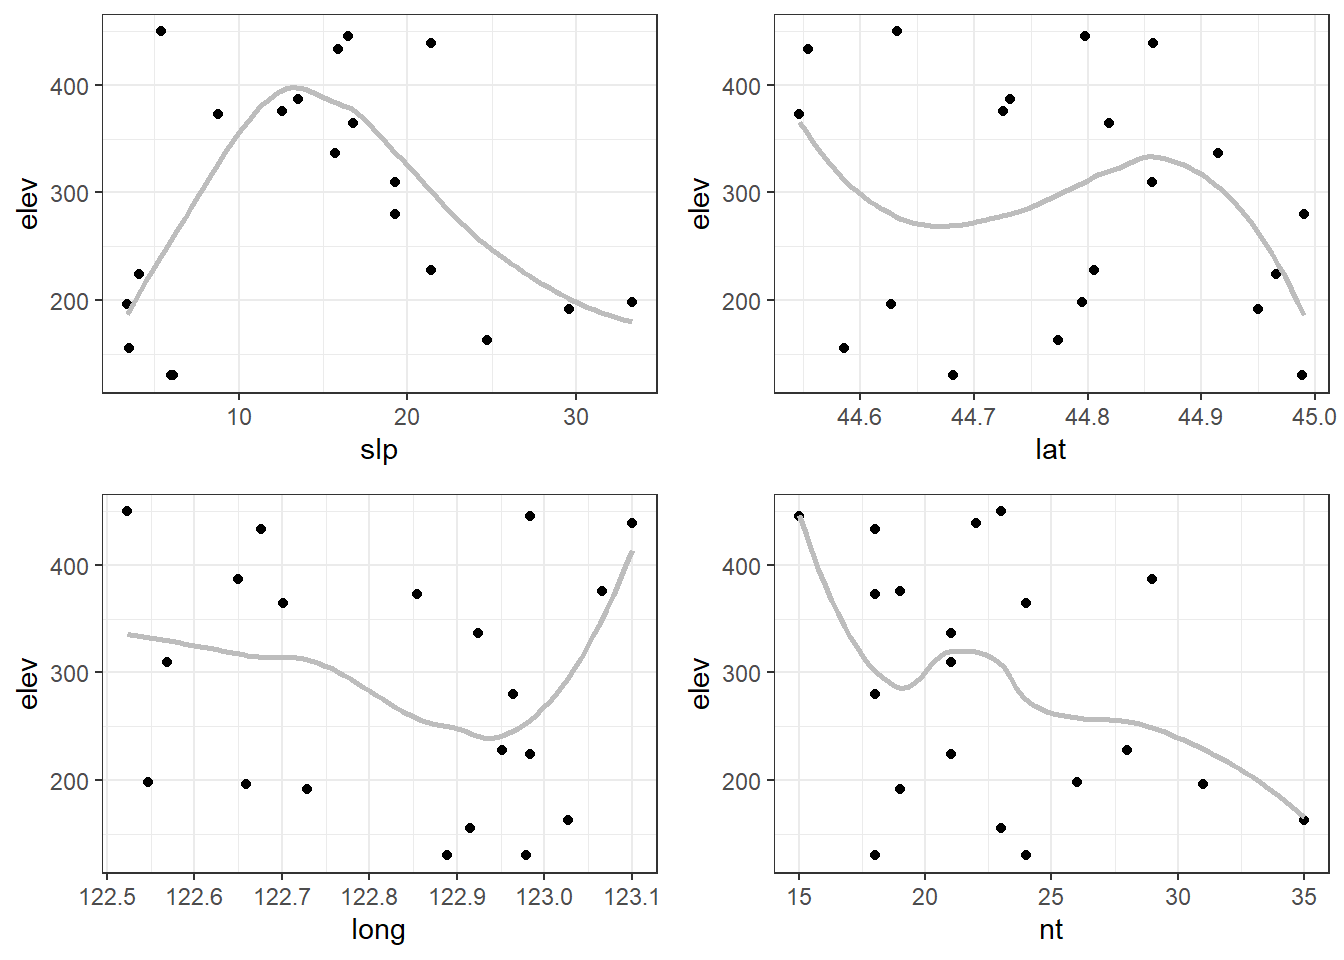 Automating exploratory plots with ggplot2 and purrr